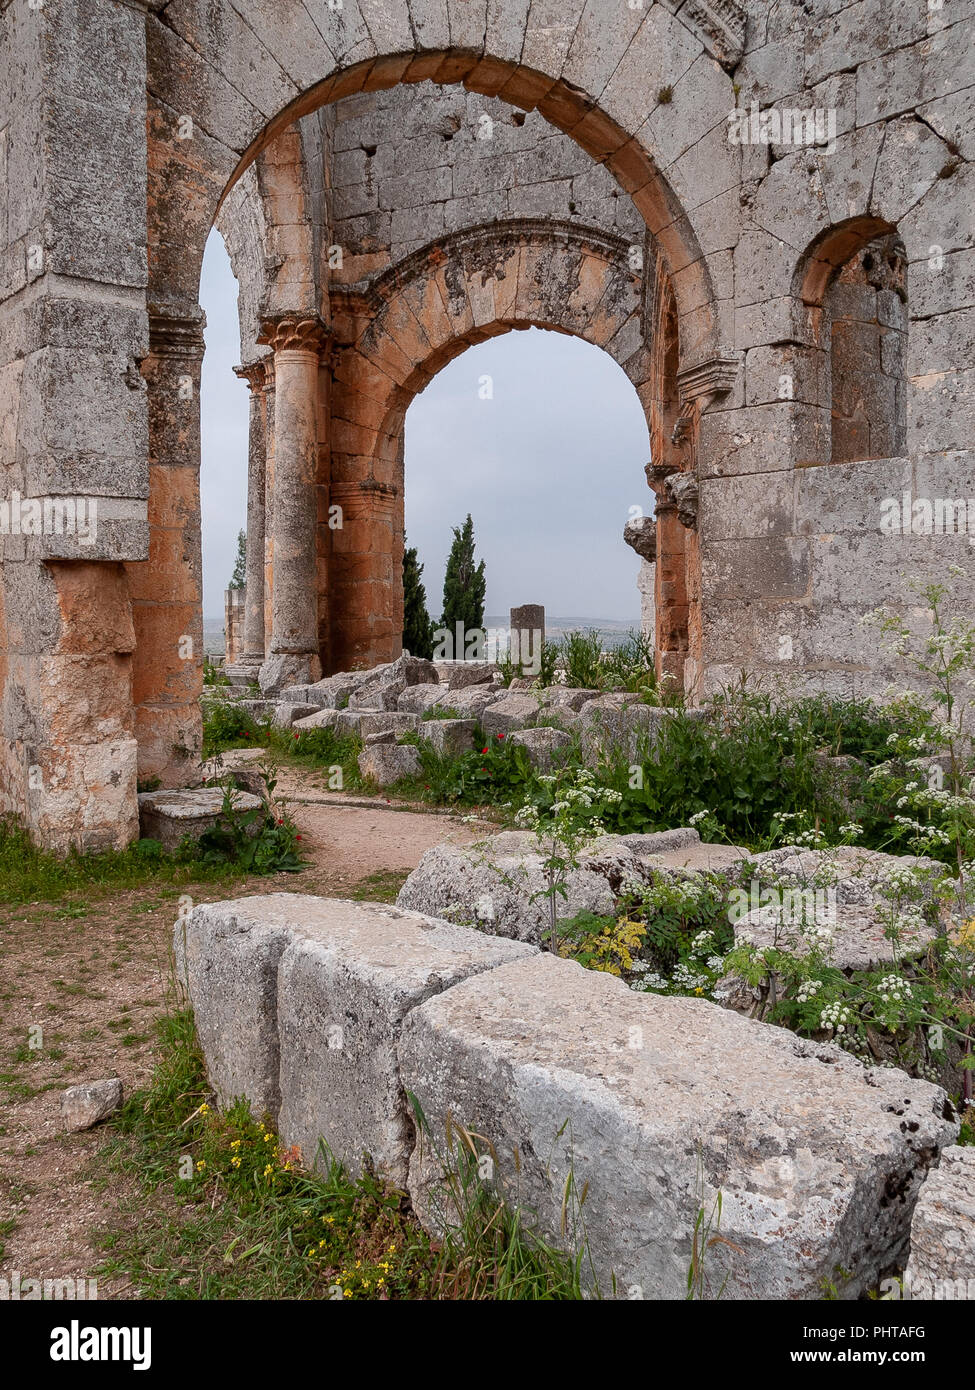 Remains of the Church of Saint Simeon Stylite (475 AD). Ruins of Christian basilica also known as Qalaat Semaan are located 19 km northwest of Aleppo. - Stock Image